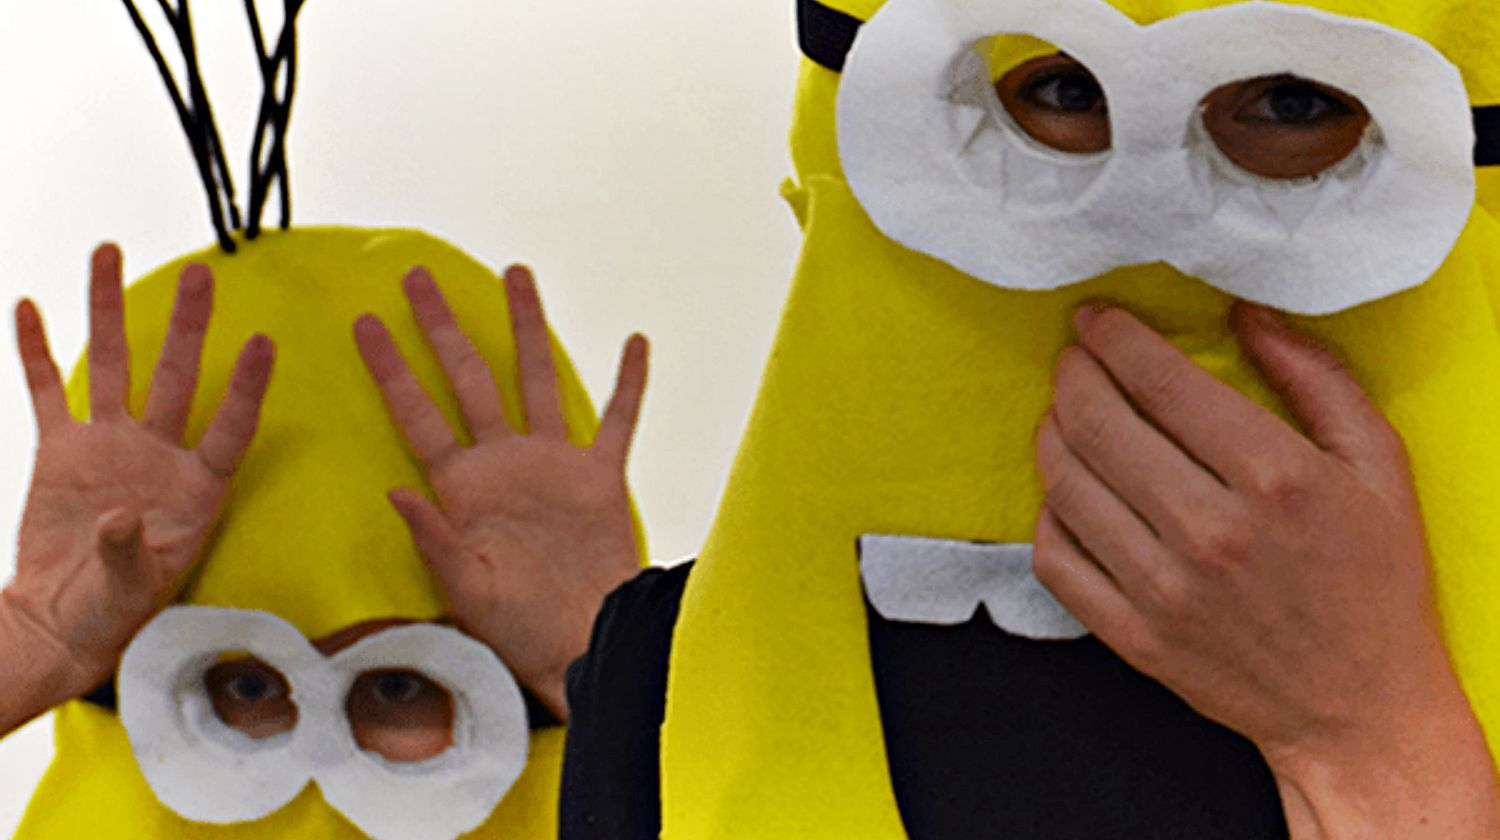 Two minion costume | How To Make A Minion Costume | DIY Costume Plans | Featured